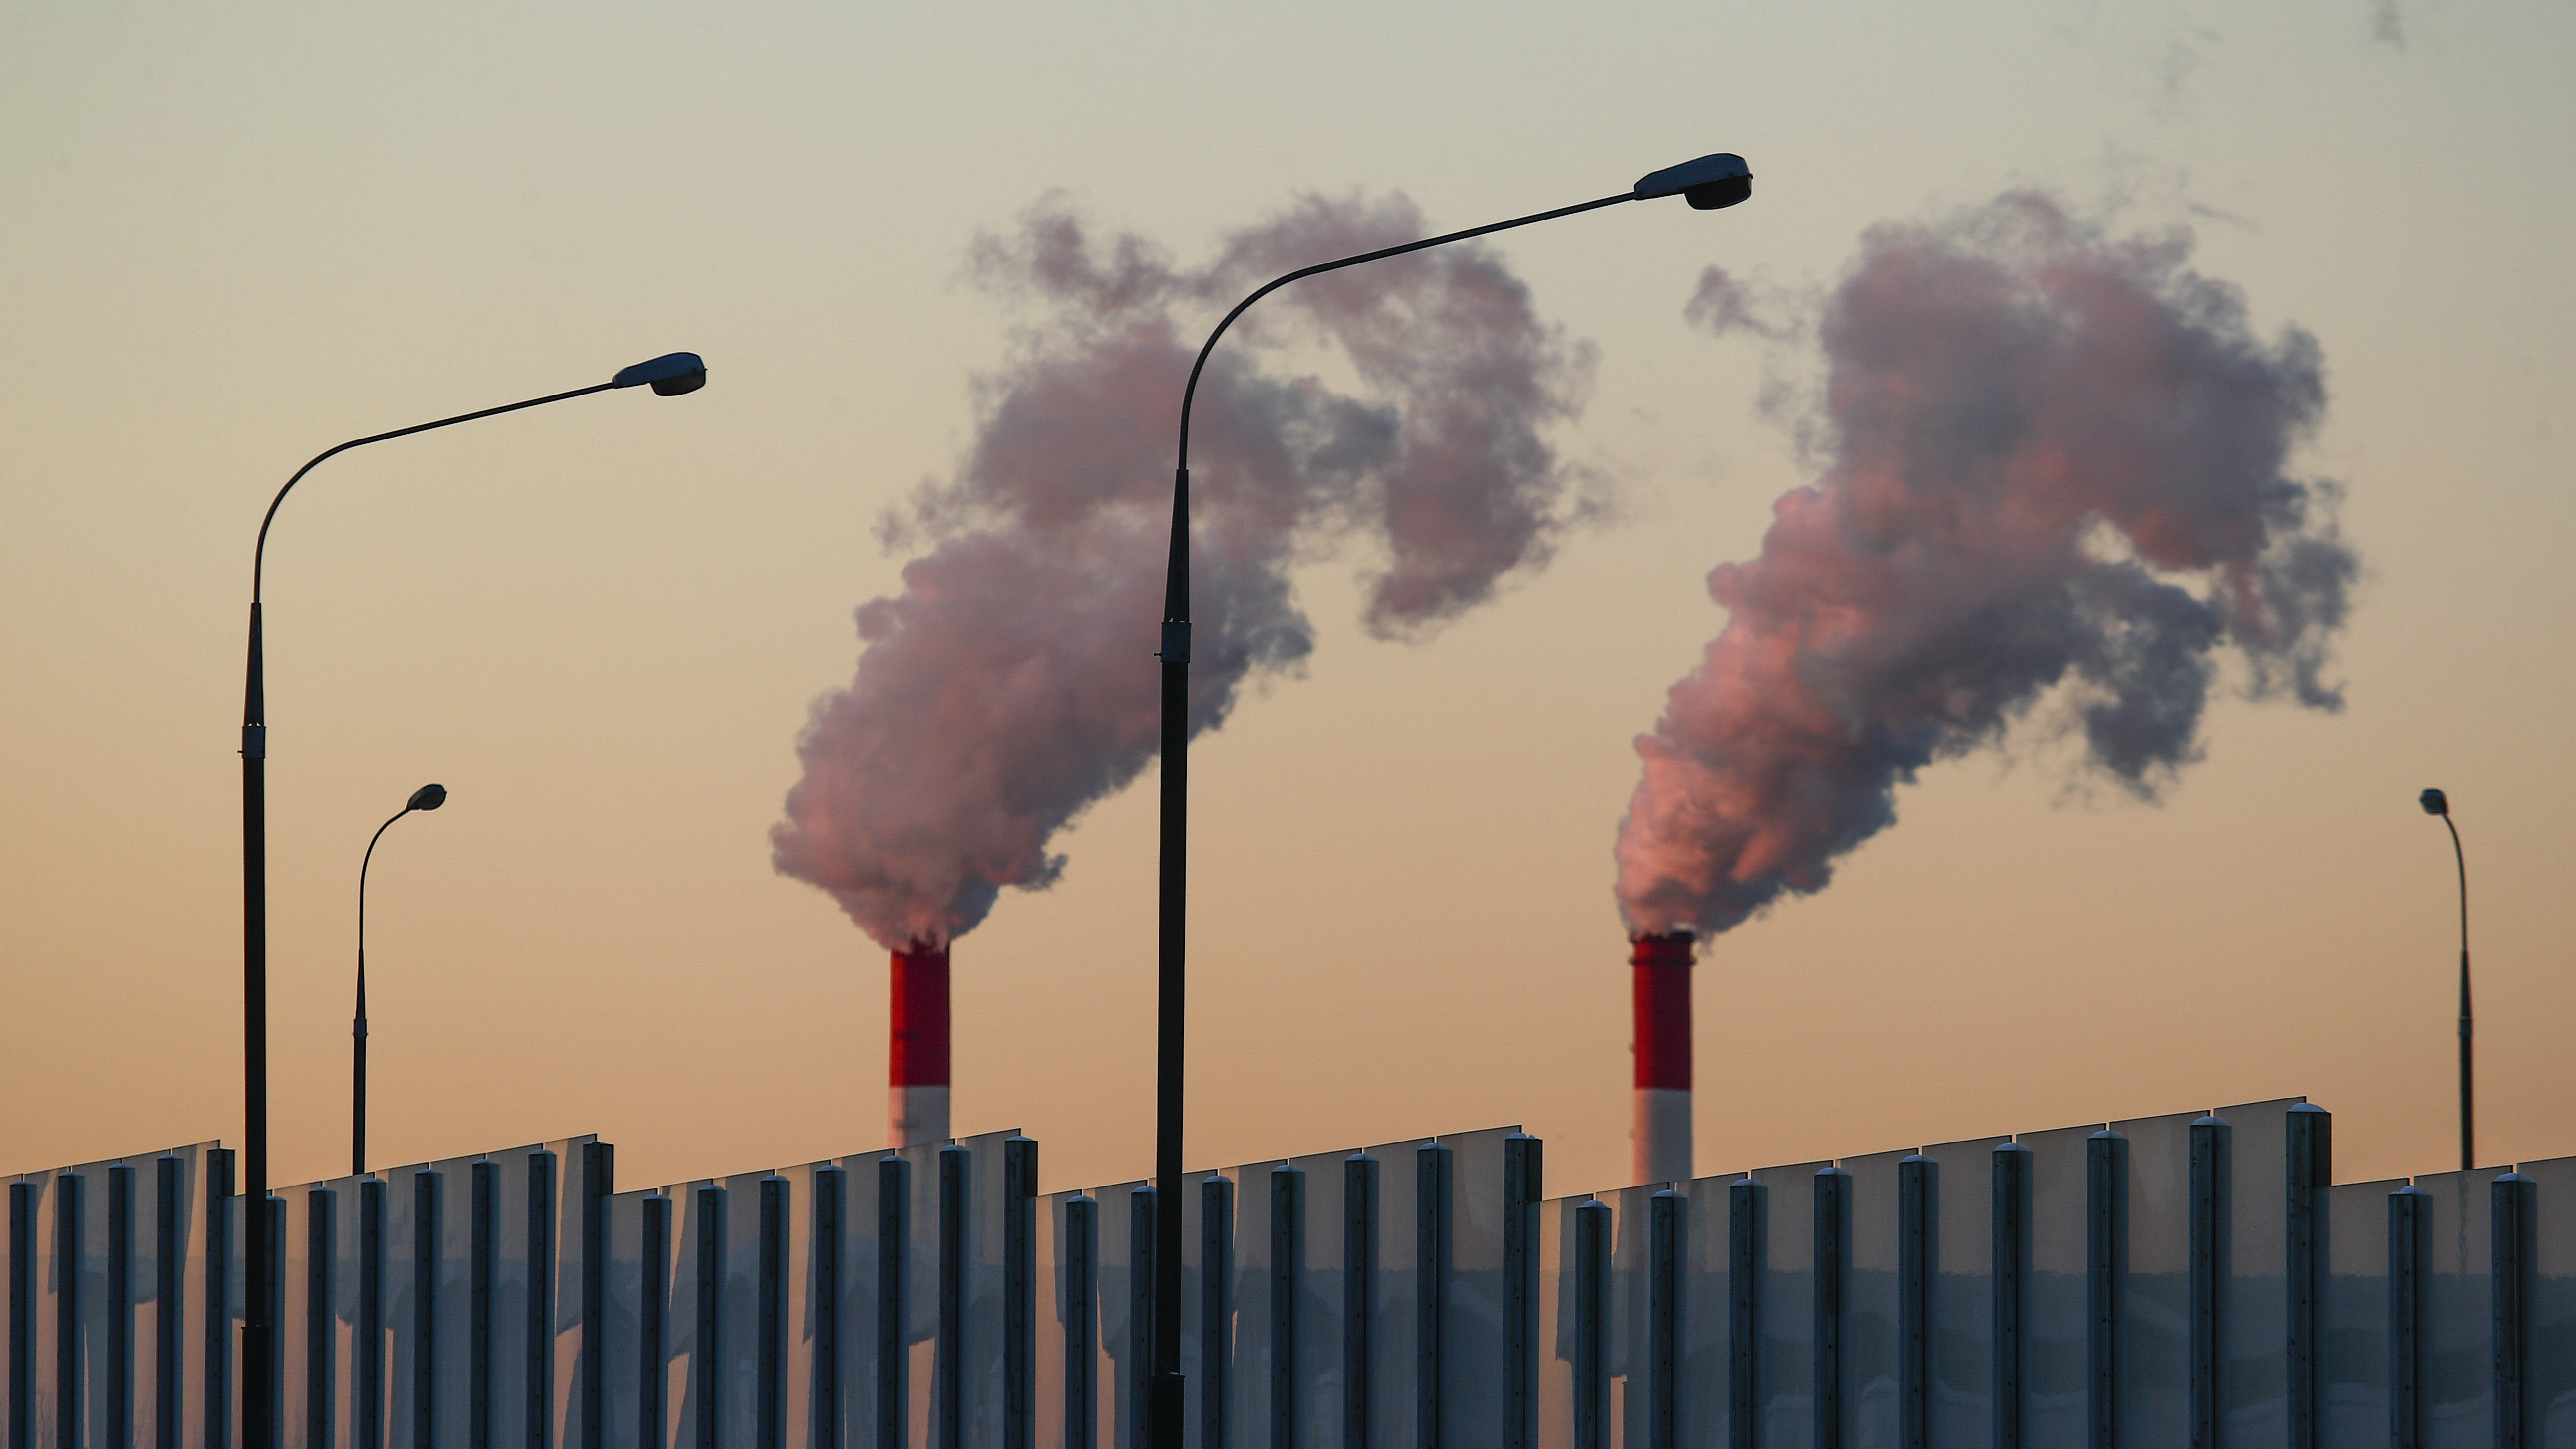 Steam rises from chimneys of a heating power plant in Moscow, Russia March 5, 2018. REUTERS/Maxim Shemetov - UP1EE3518G10W